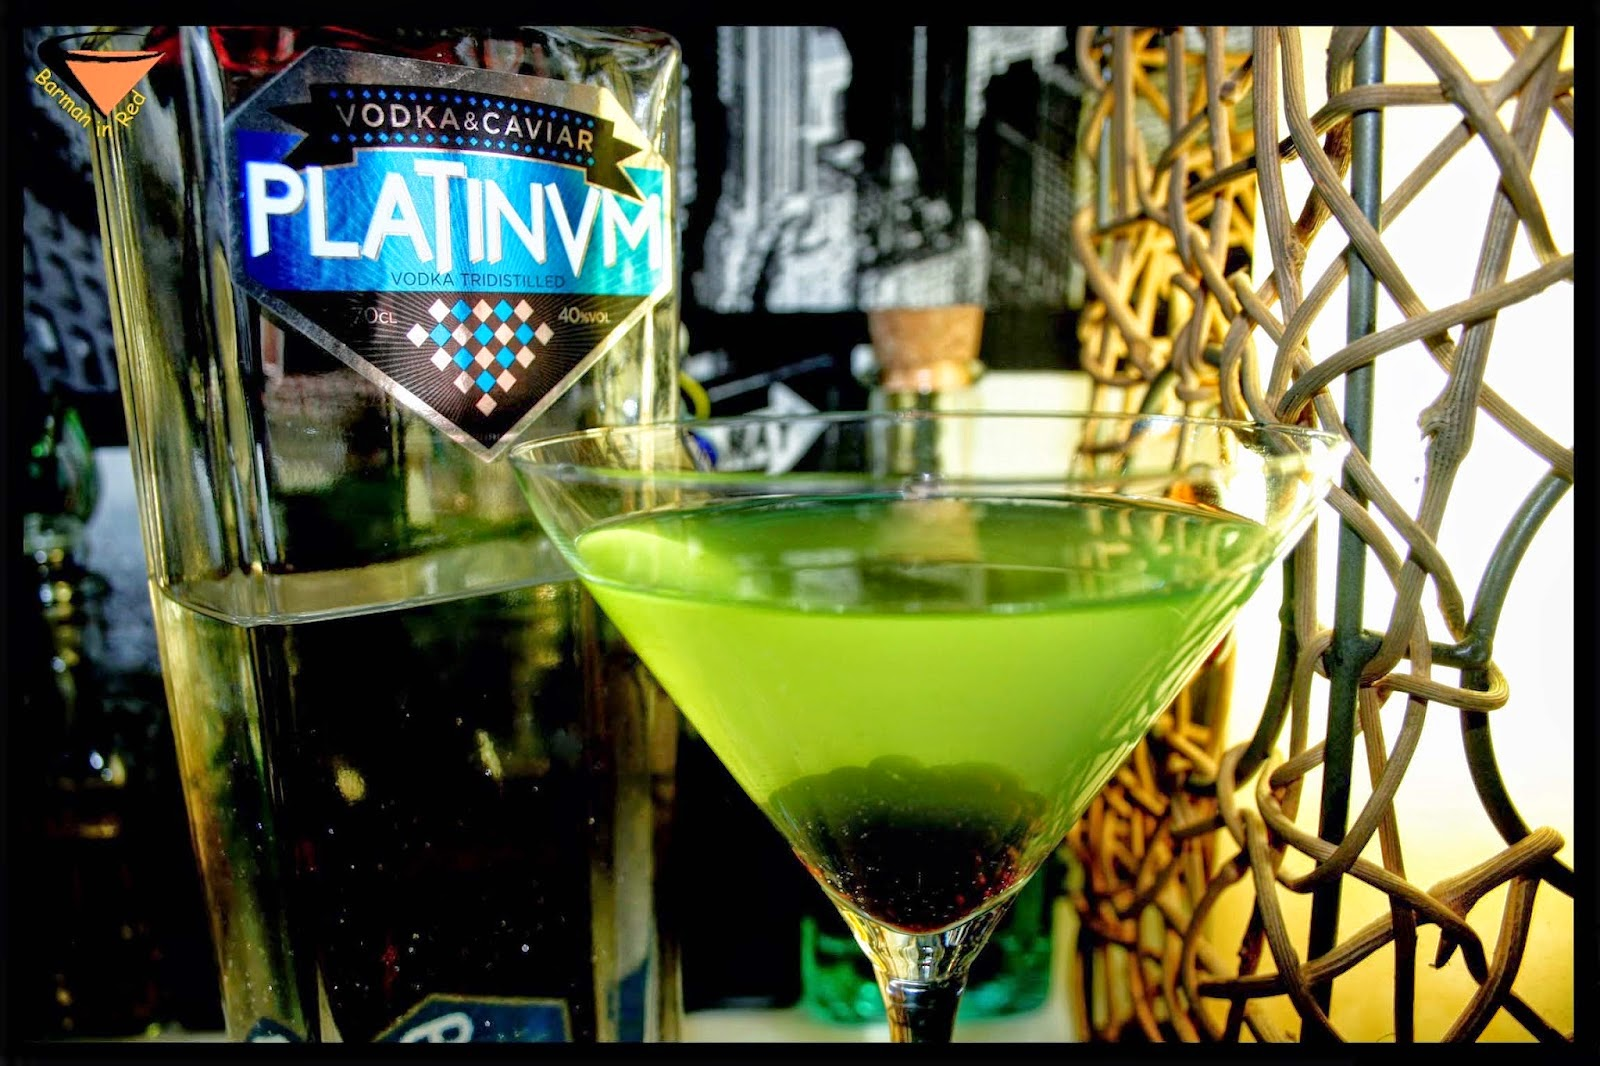 Vodka Platinum Caviar